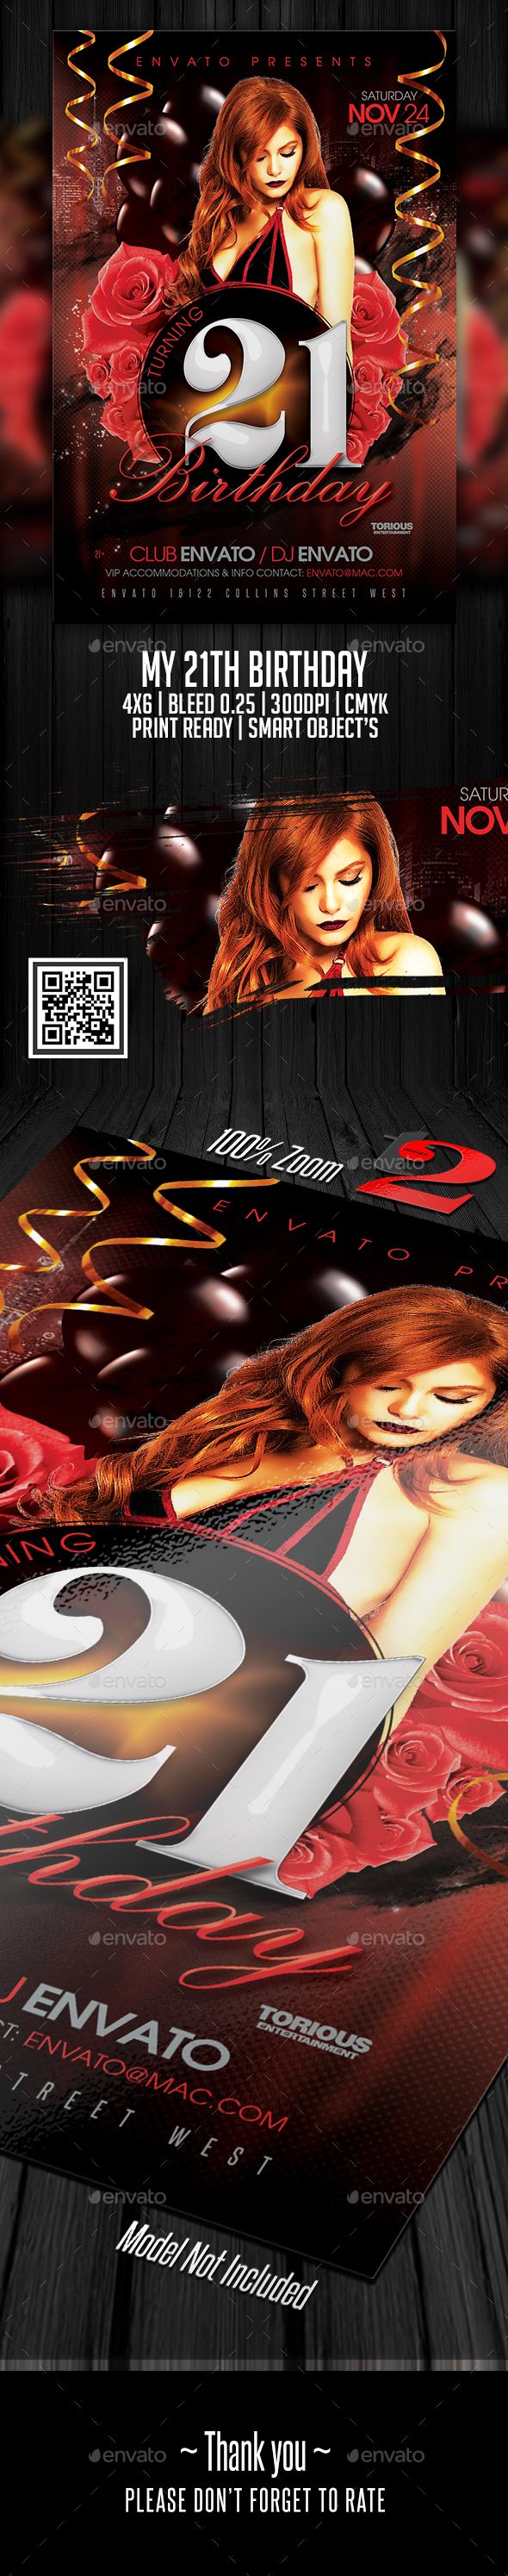 My 21th Birthday Flyer Template - Clubs & Parties Events